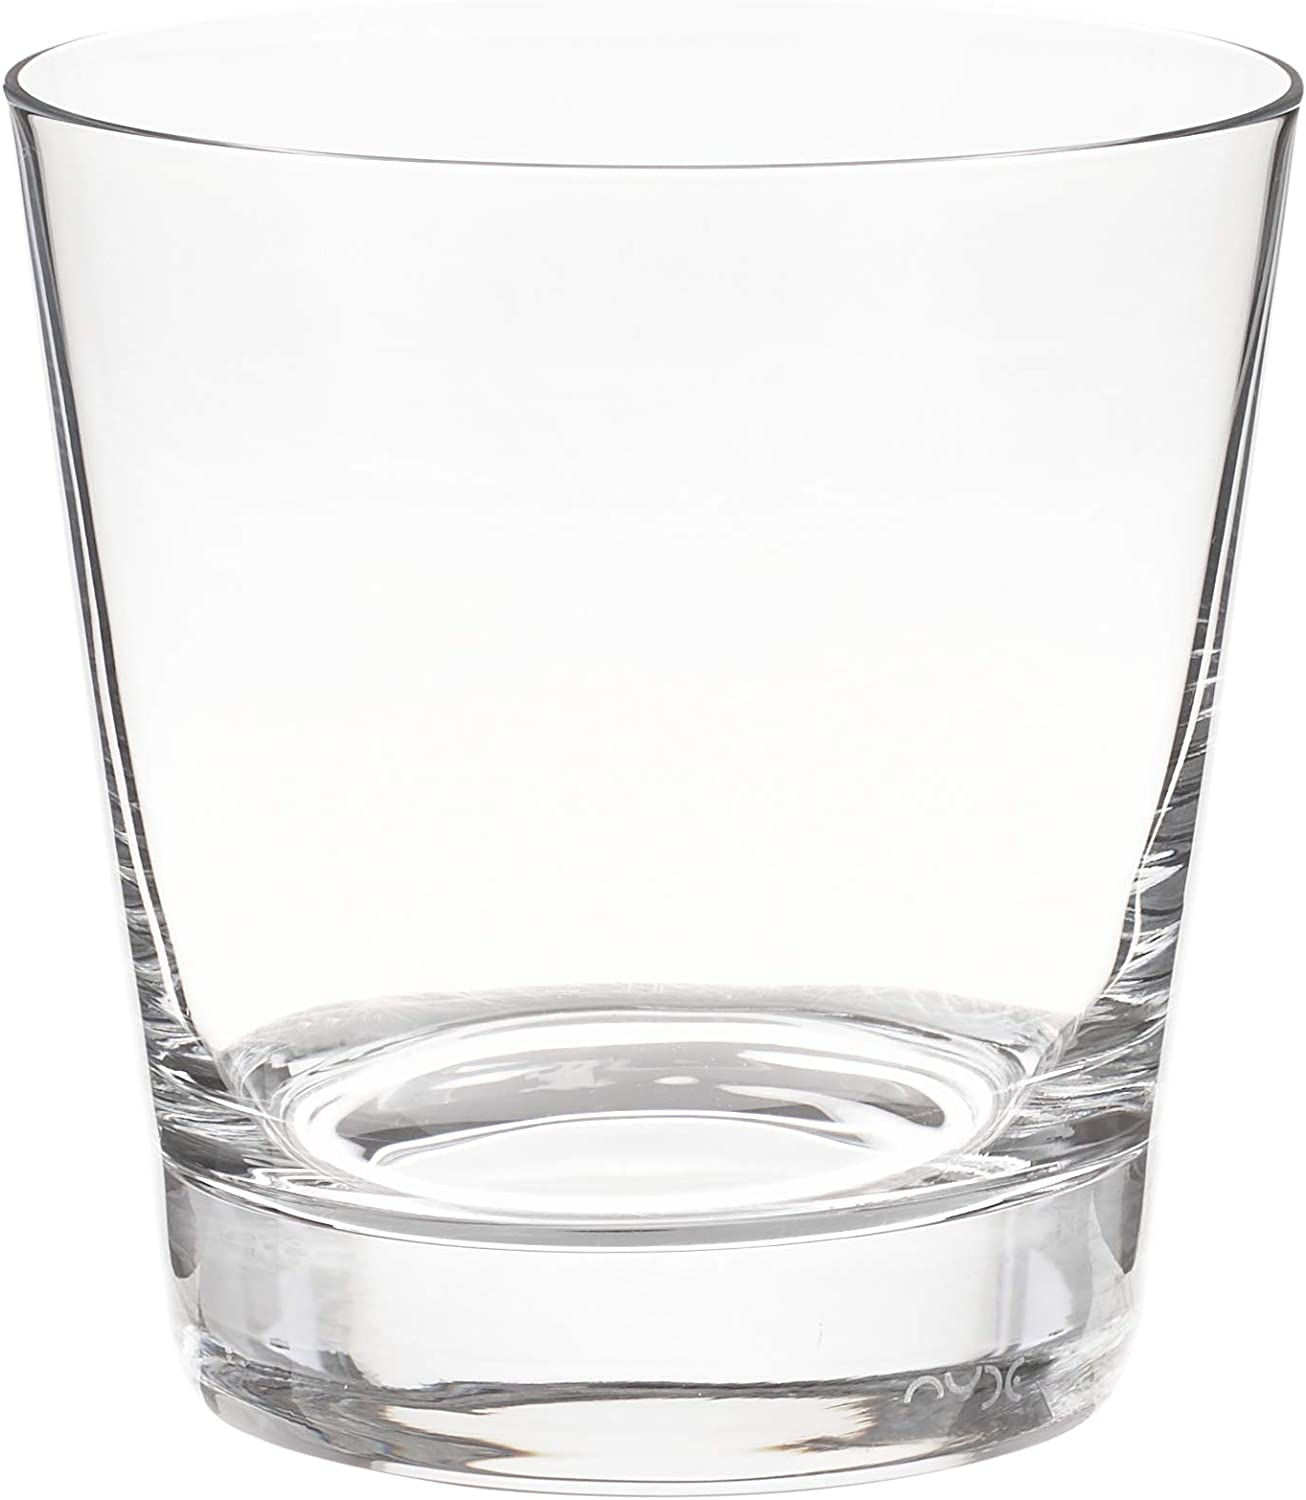 Moda Nude 13 Ounce Old Fashioned Glasses, Set of 6 Dishwasher Safe Lowball Glasses - Heavy Base, Laser Cut Rim, Clear Crystal Glass Cocktail Glasses, Lead Free, For Cocktails Or Beverages